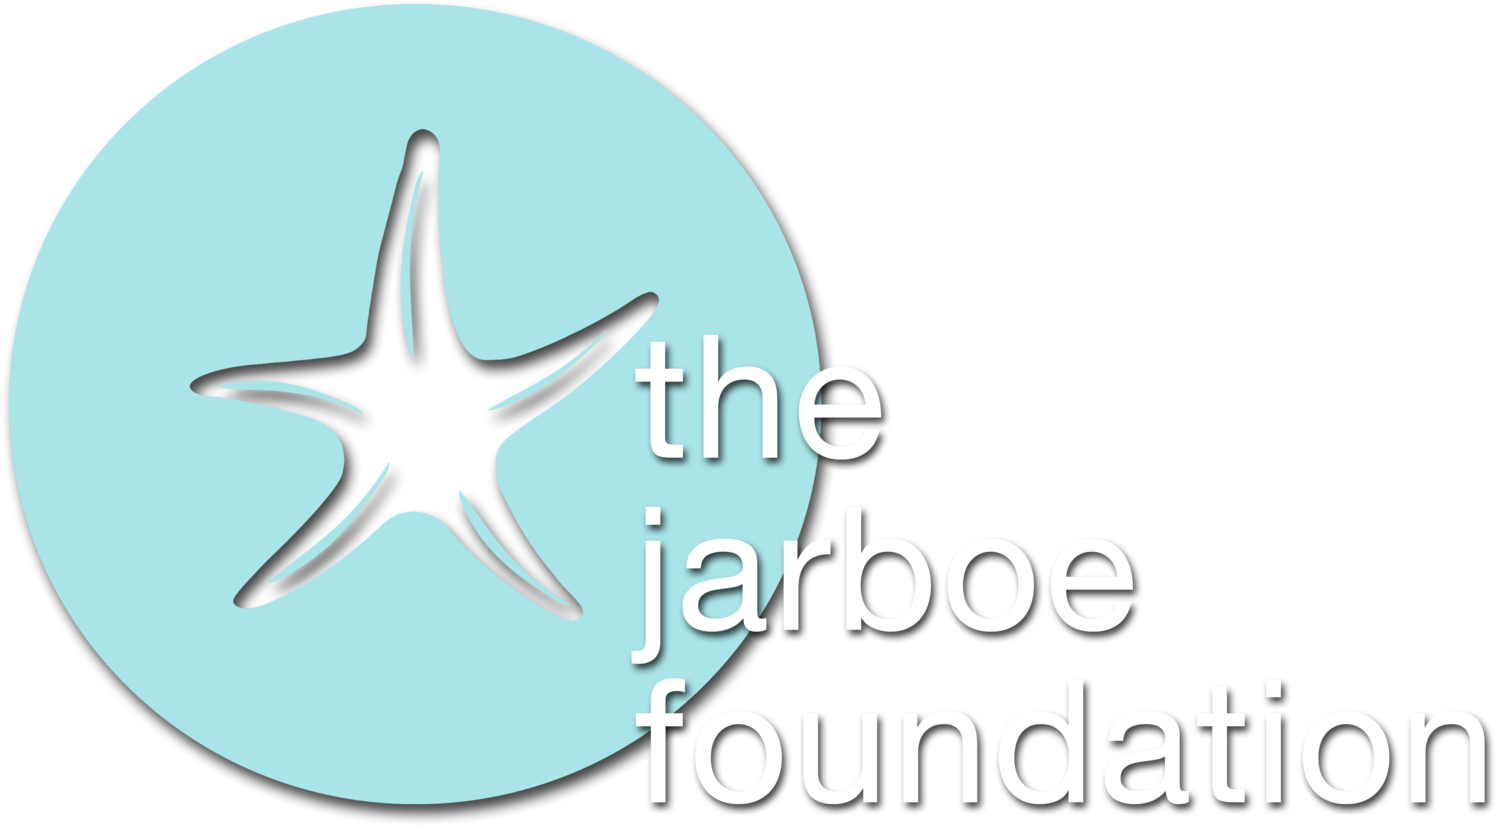 THE JARBOE FOUNDATION